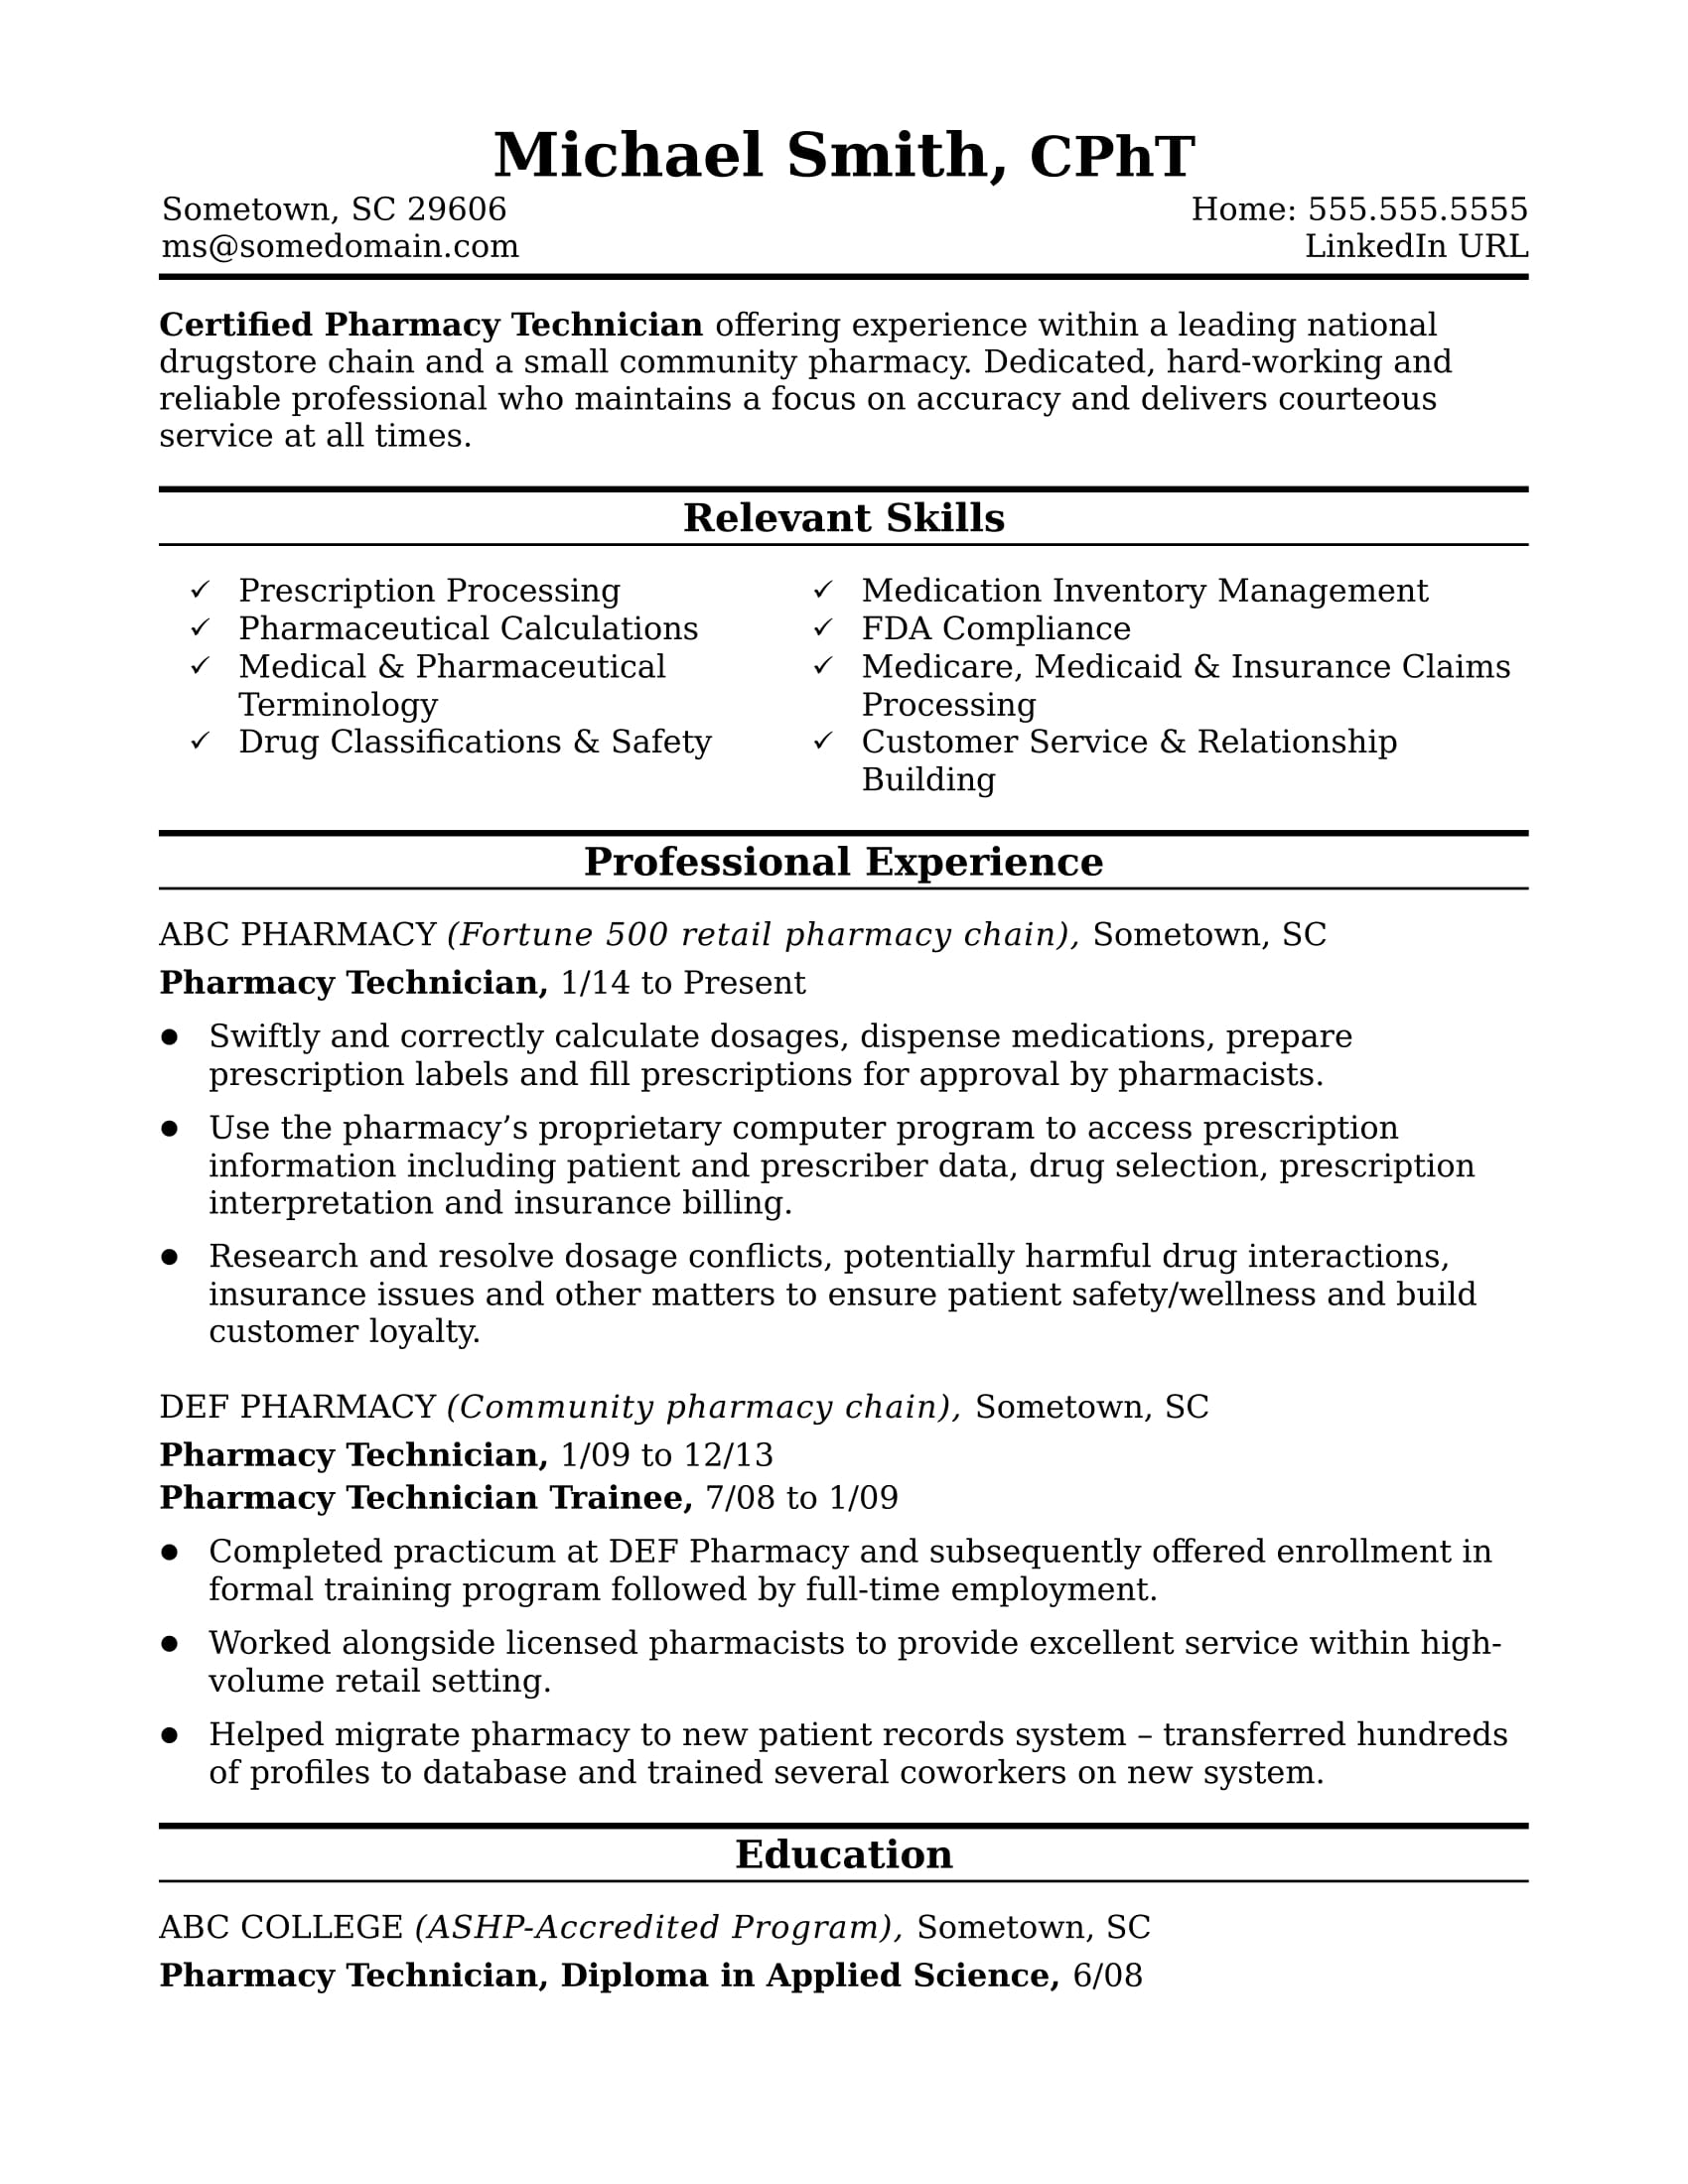 Lovely Sample Resume For A Pharmacy Technician Regarding Resume For Pharmacy Technician